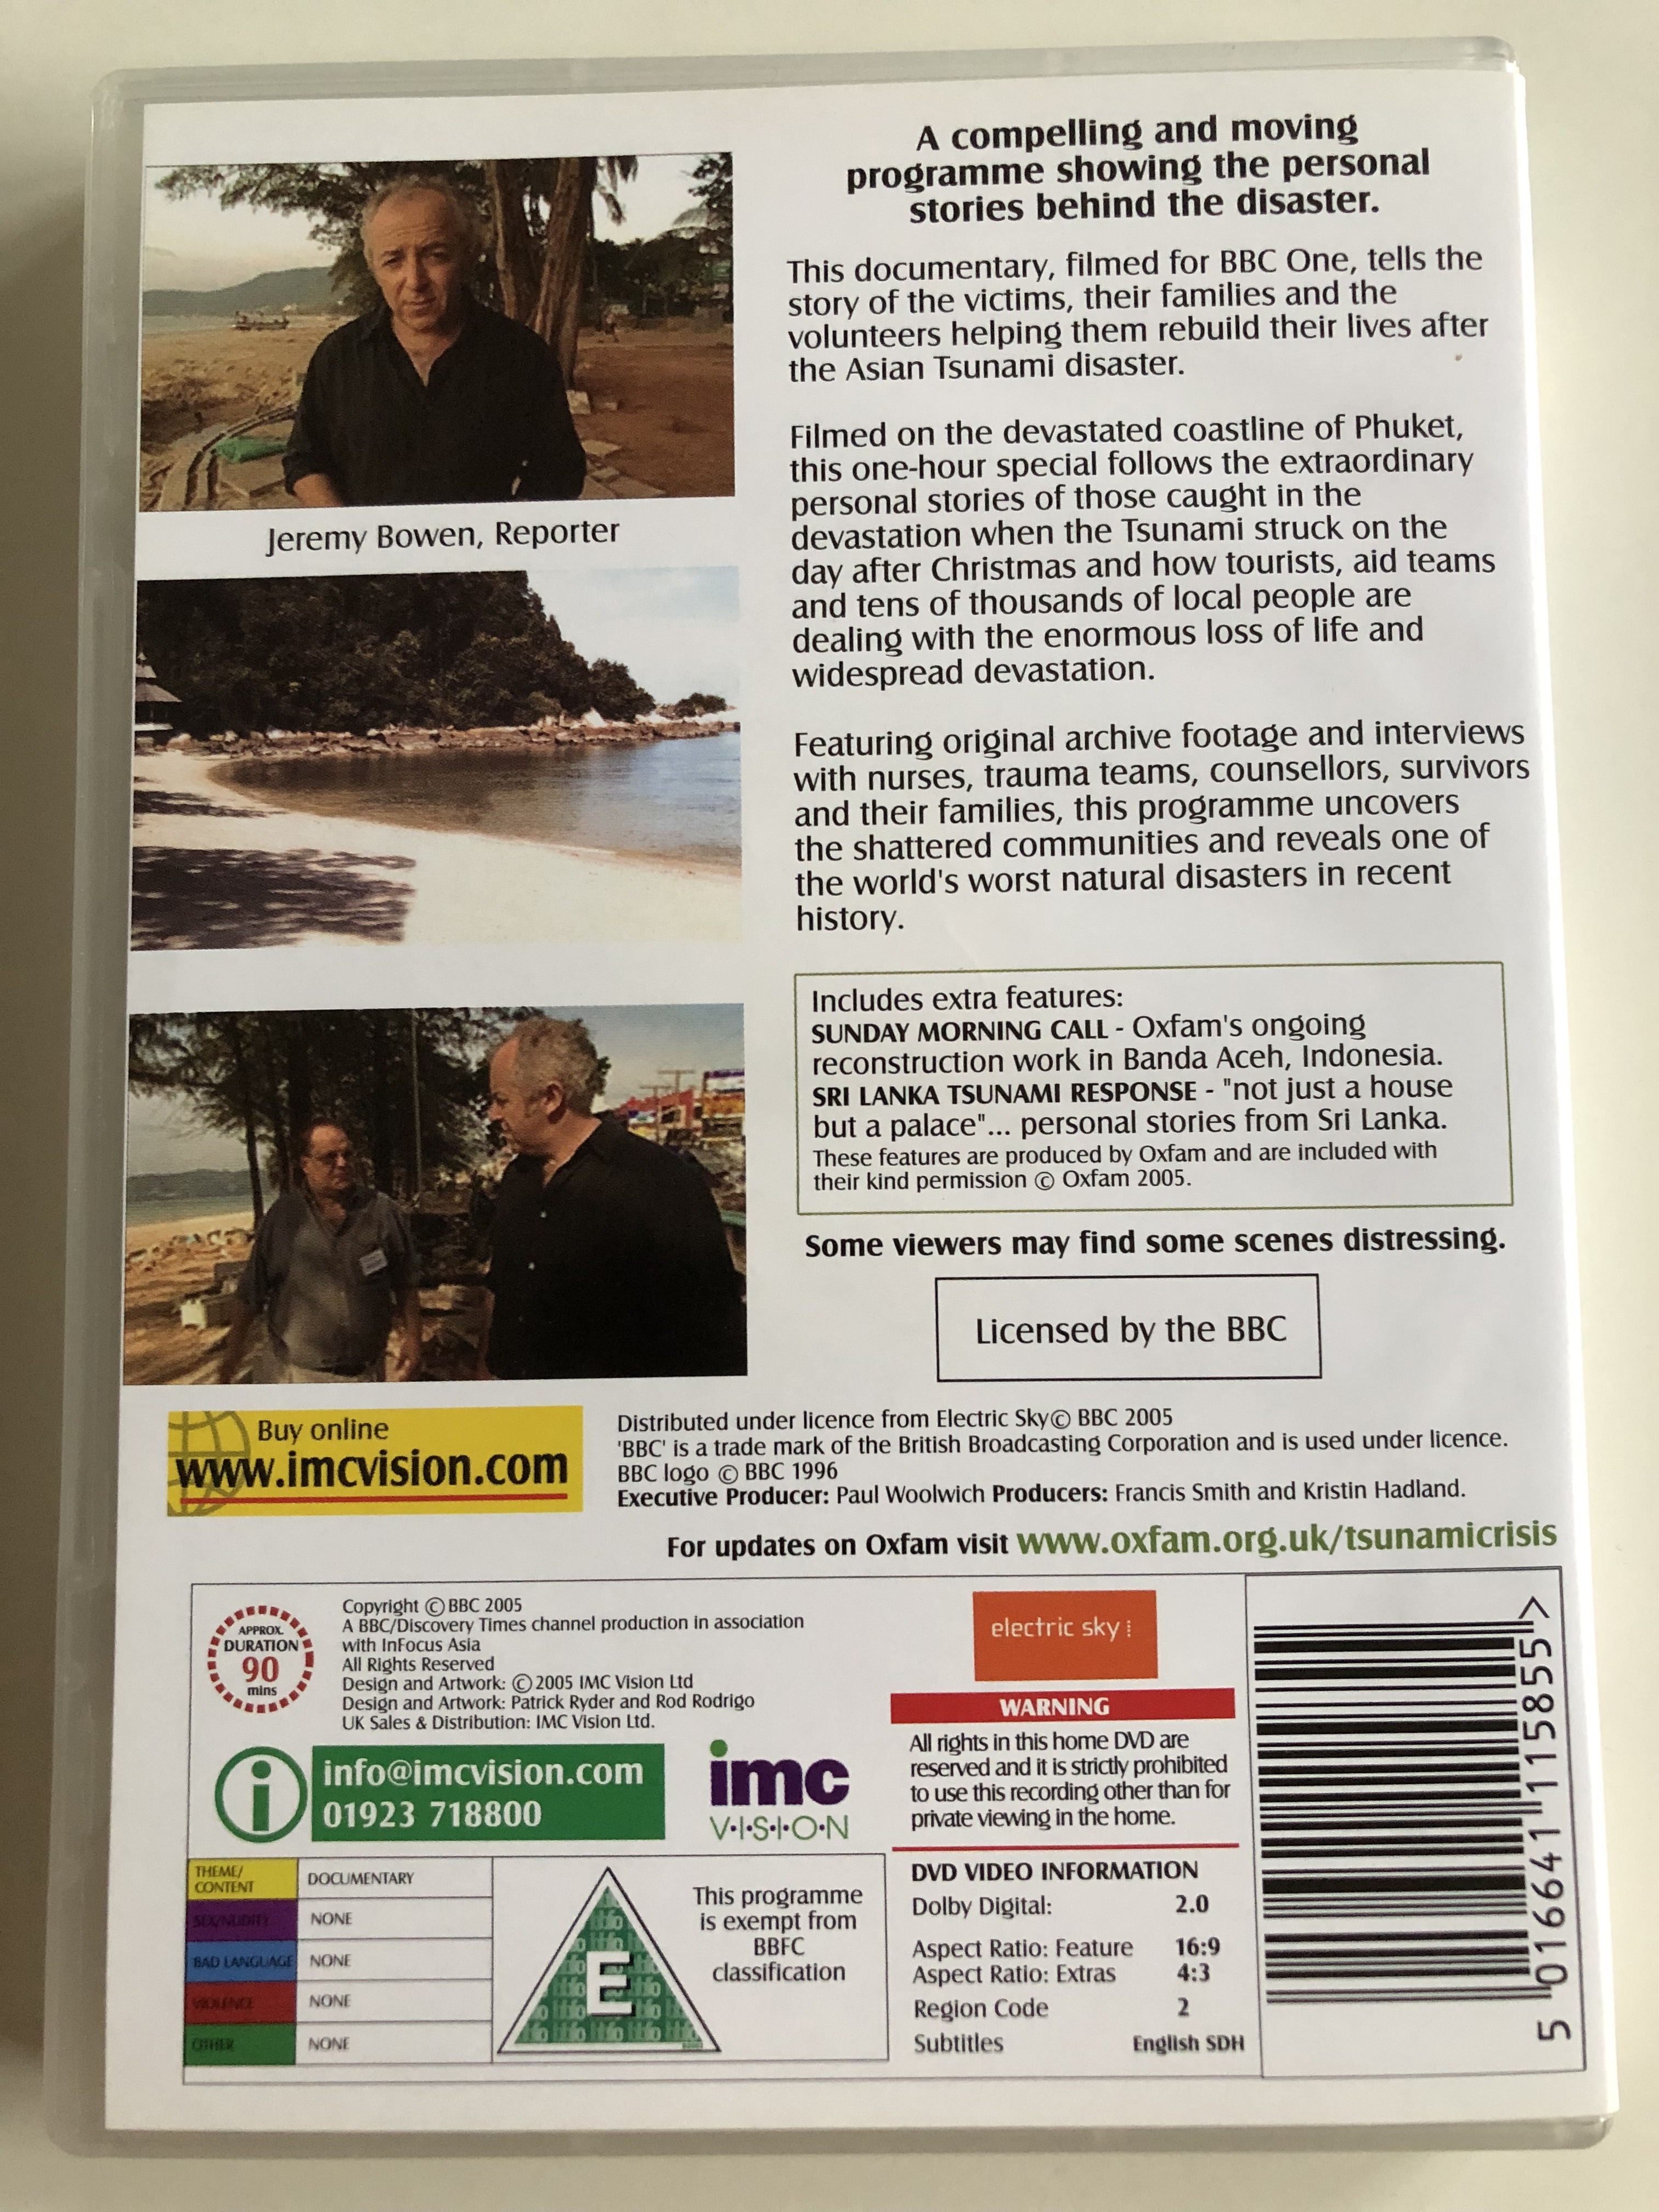 tsunami-the-killer-wave-bbc-dvd-2005-executive-producer-paul-woolwich-a-compelling-and-moving-documentary-about-the-2004-asian-tsunami-disaster-reported-by-jeremy-bowen-2-.jpg